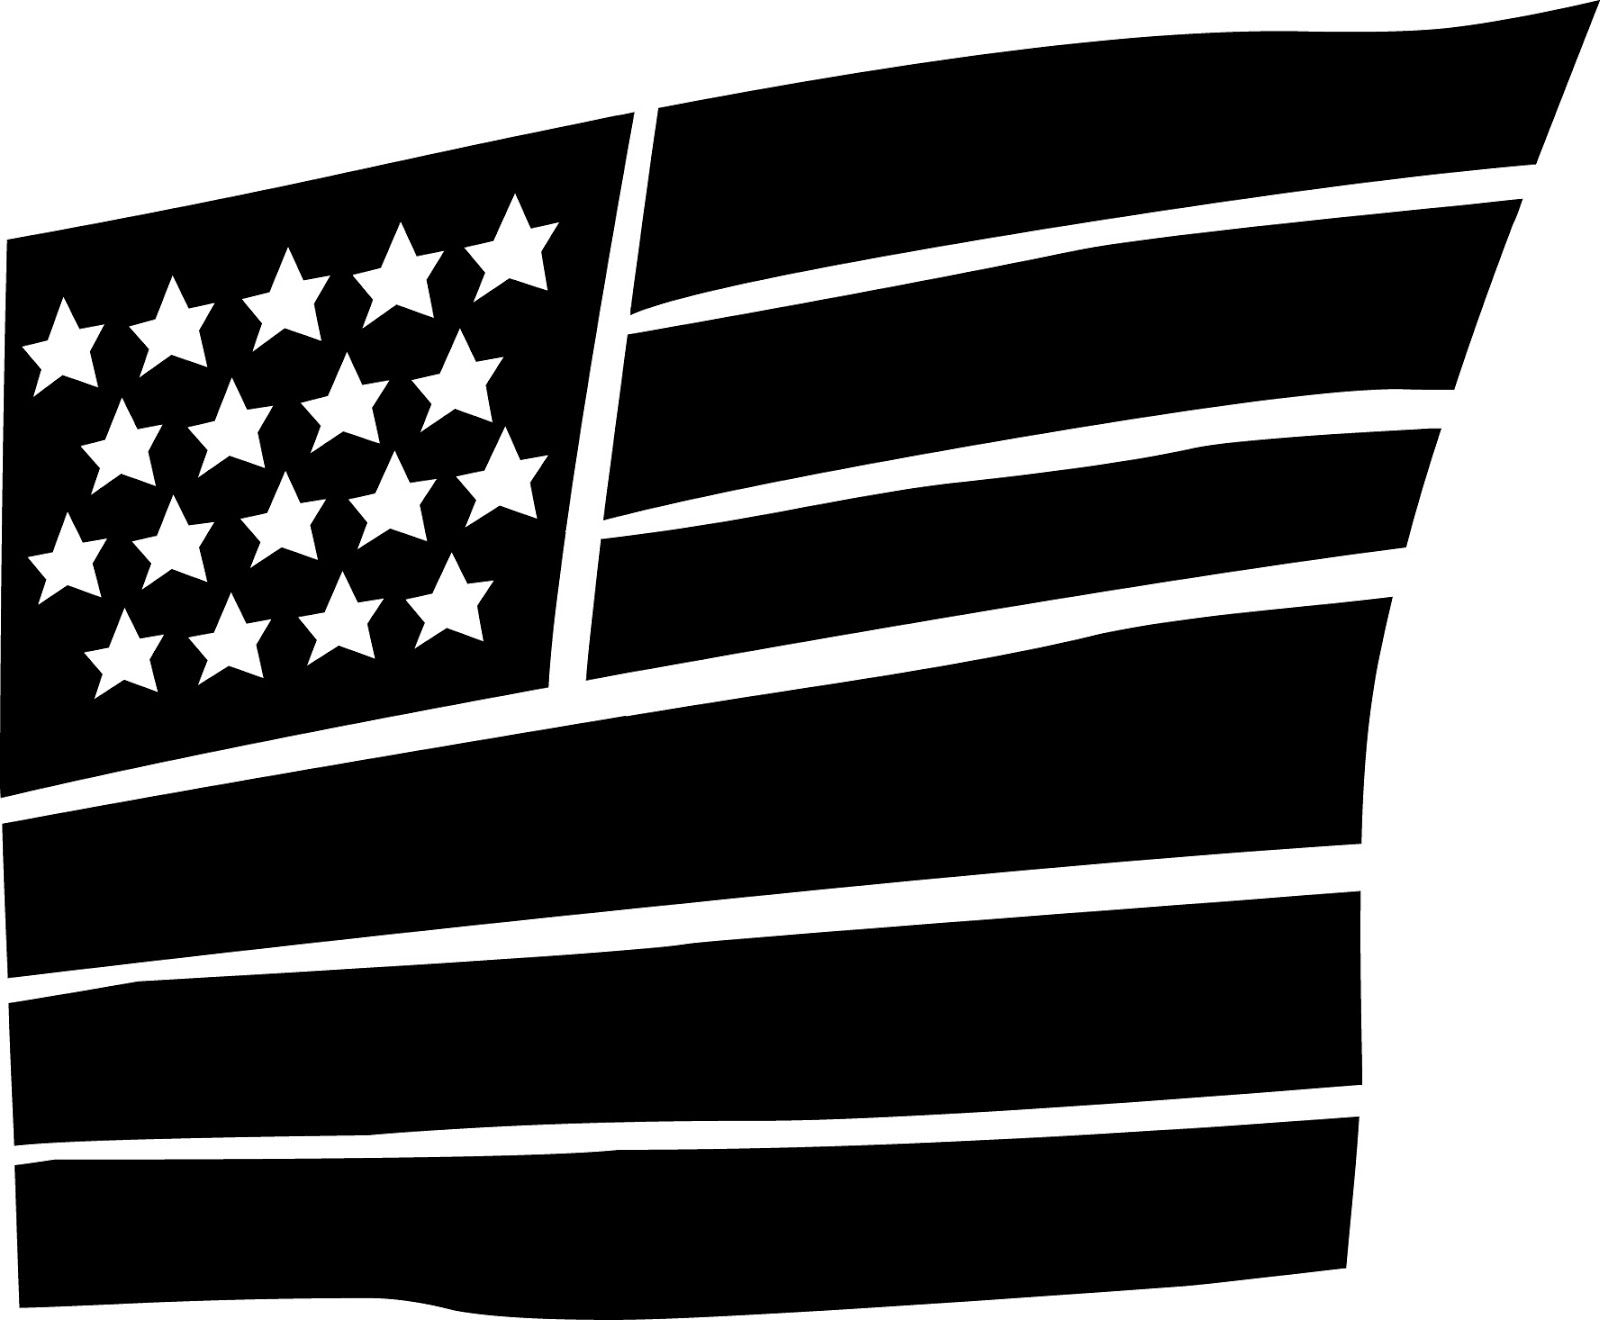 1600x1320 Top 45 American Flag Clip Art Images & Pictures Download - Wallpaper ...